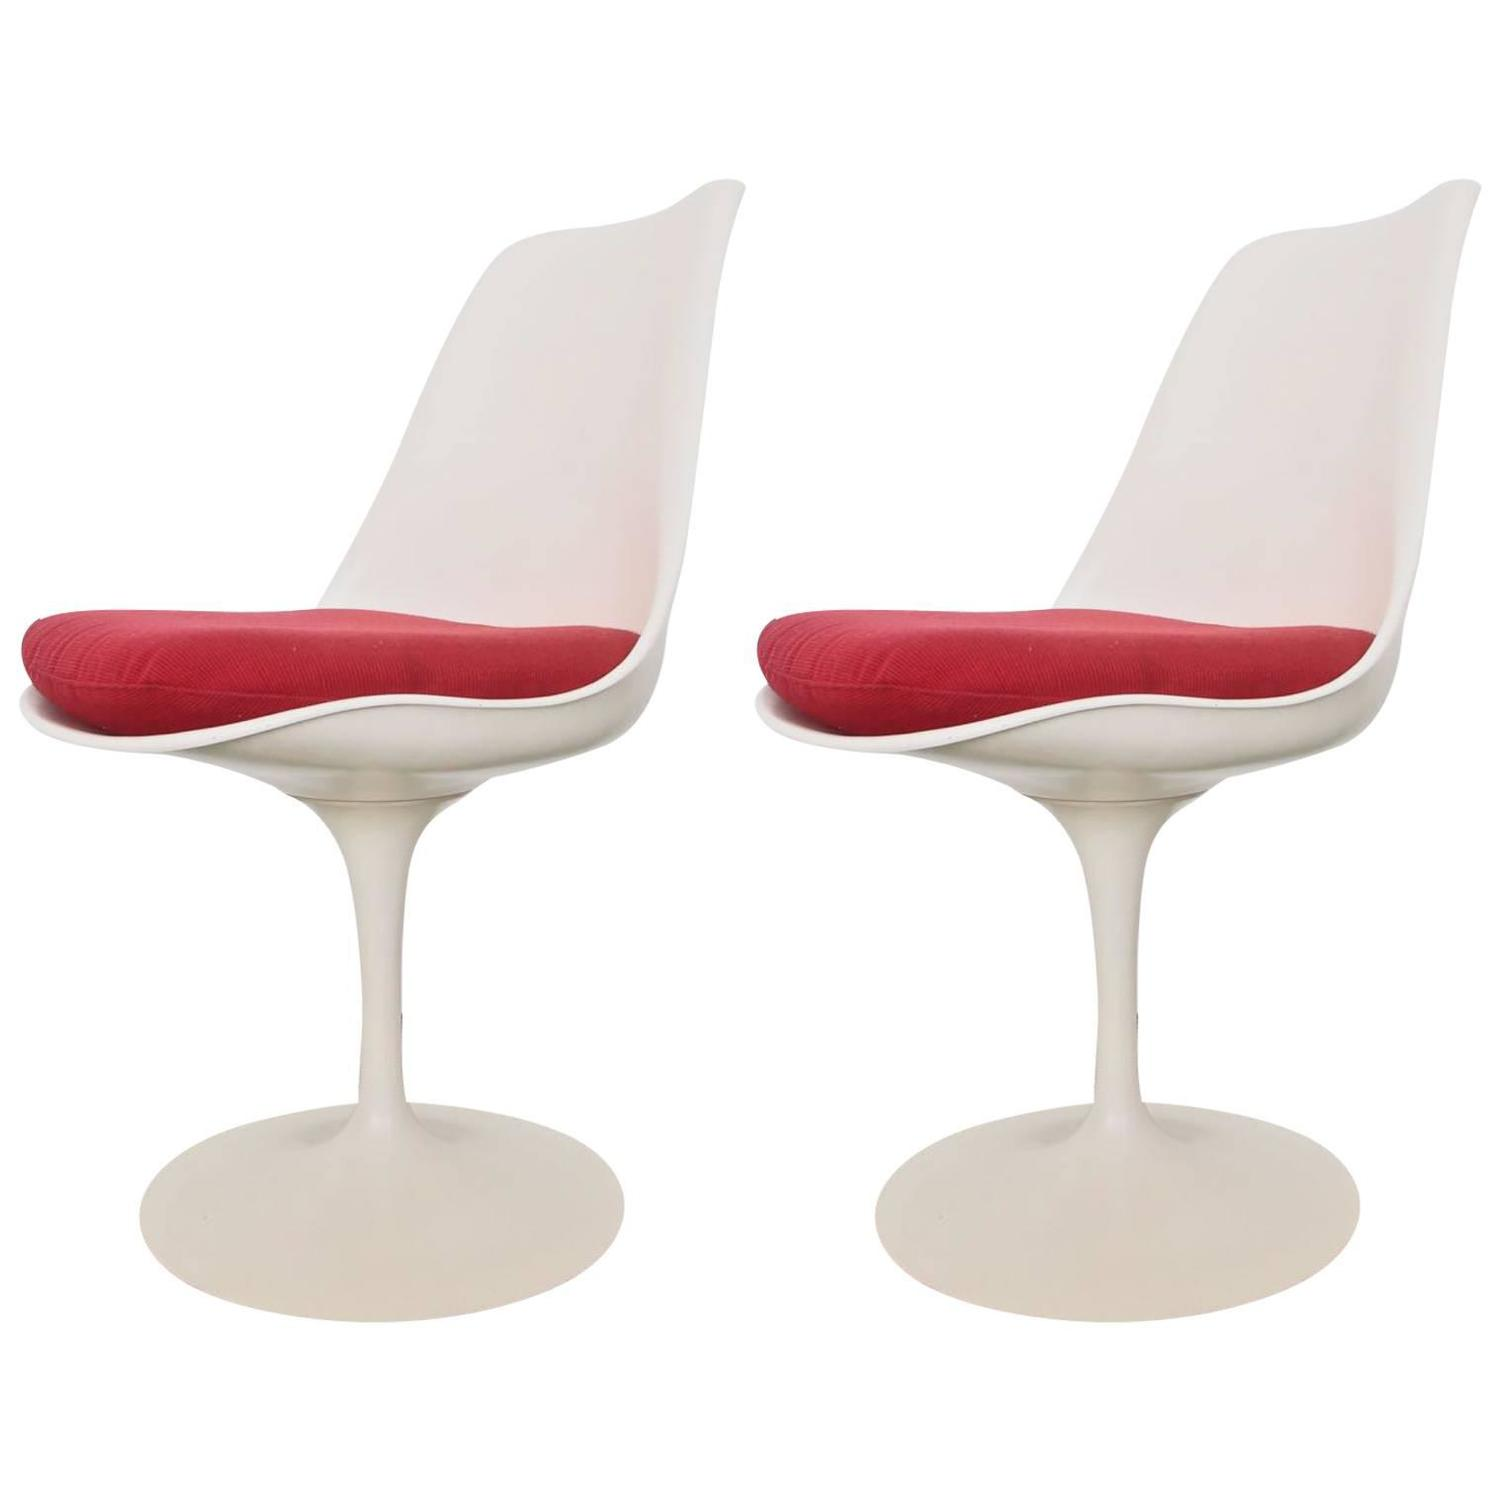 Knoll Egg Chair Pair Of Eero Saarinen Tulip Chairs For Sale At 1stdibs